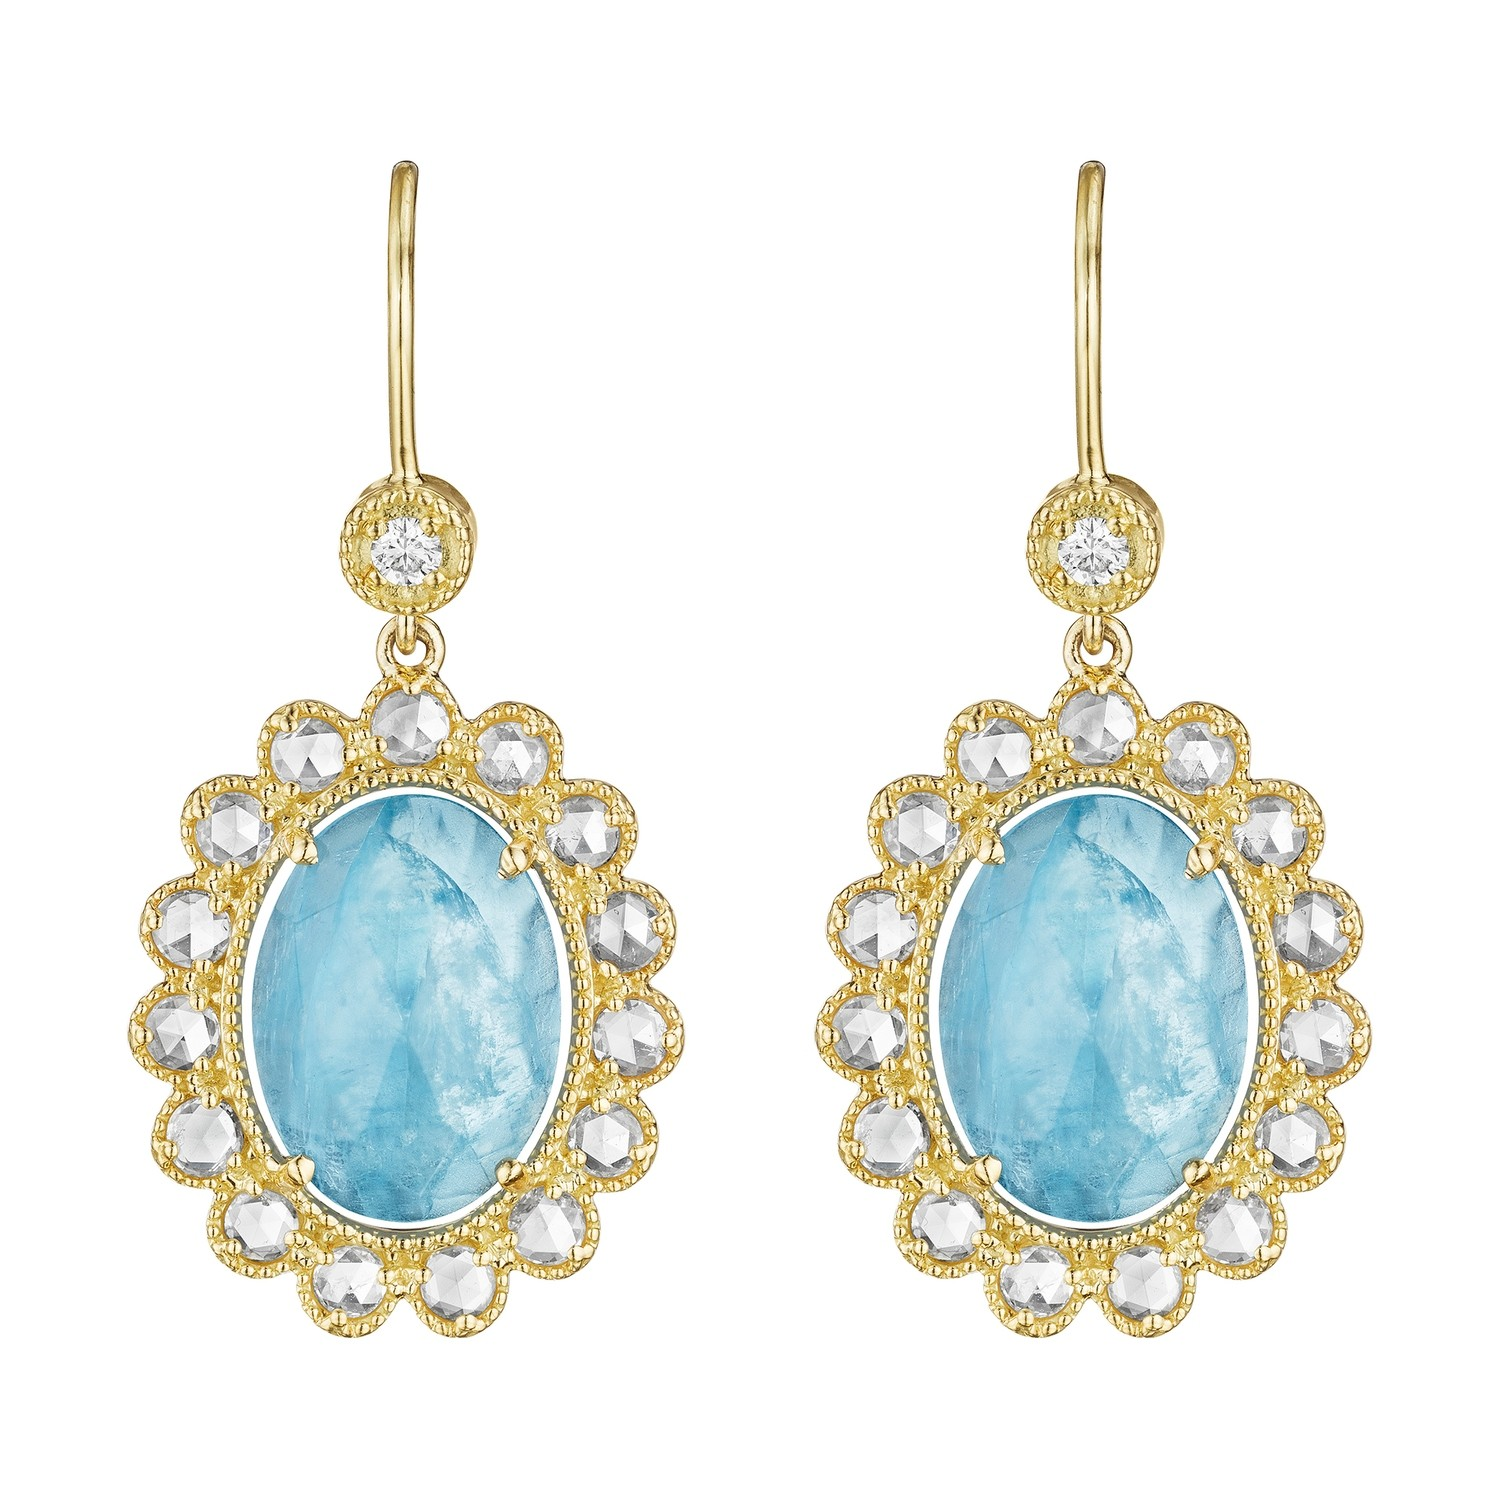 Rose-Cut Diamond Scalloped Oval Aquamarine Earrings